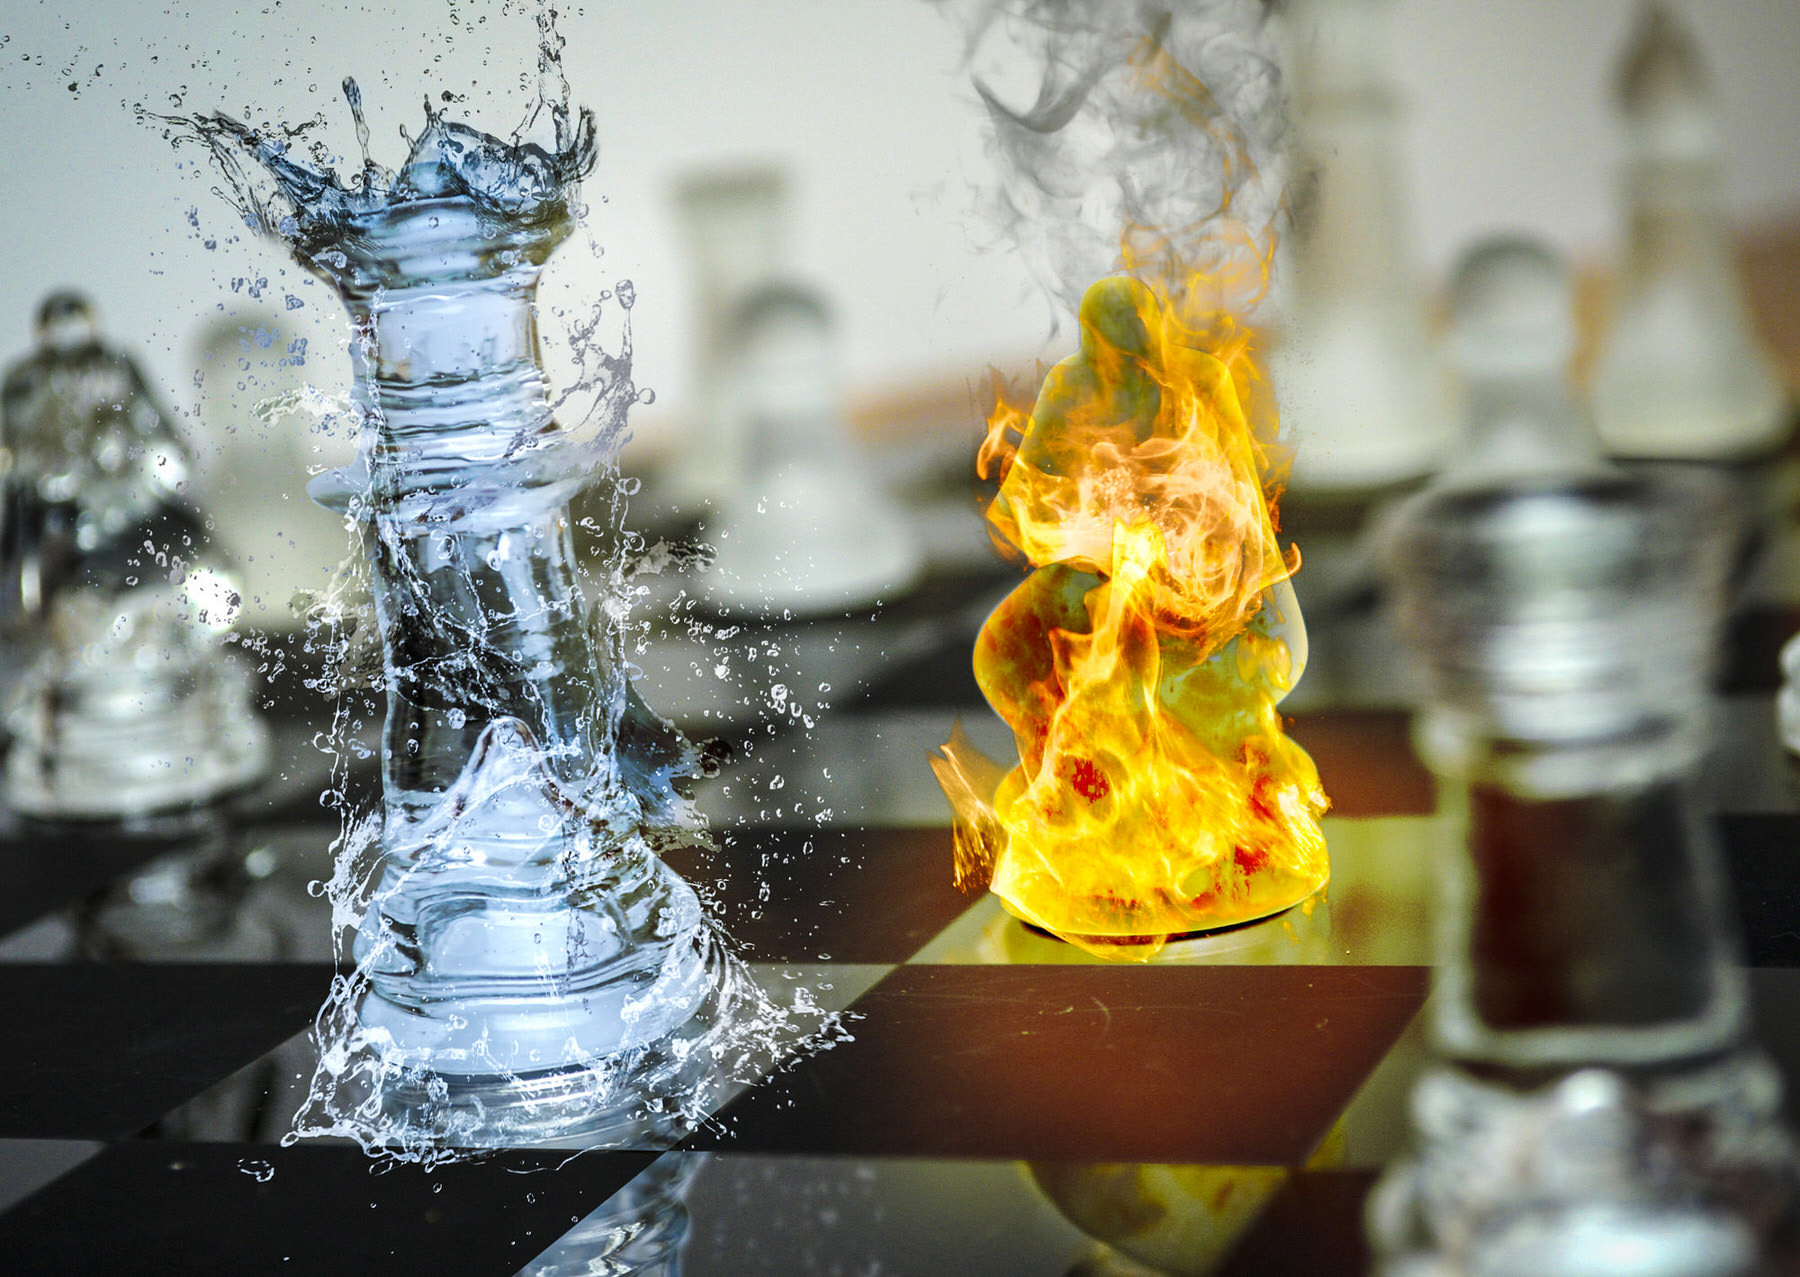 Chess Set Fire and Water Effects